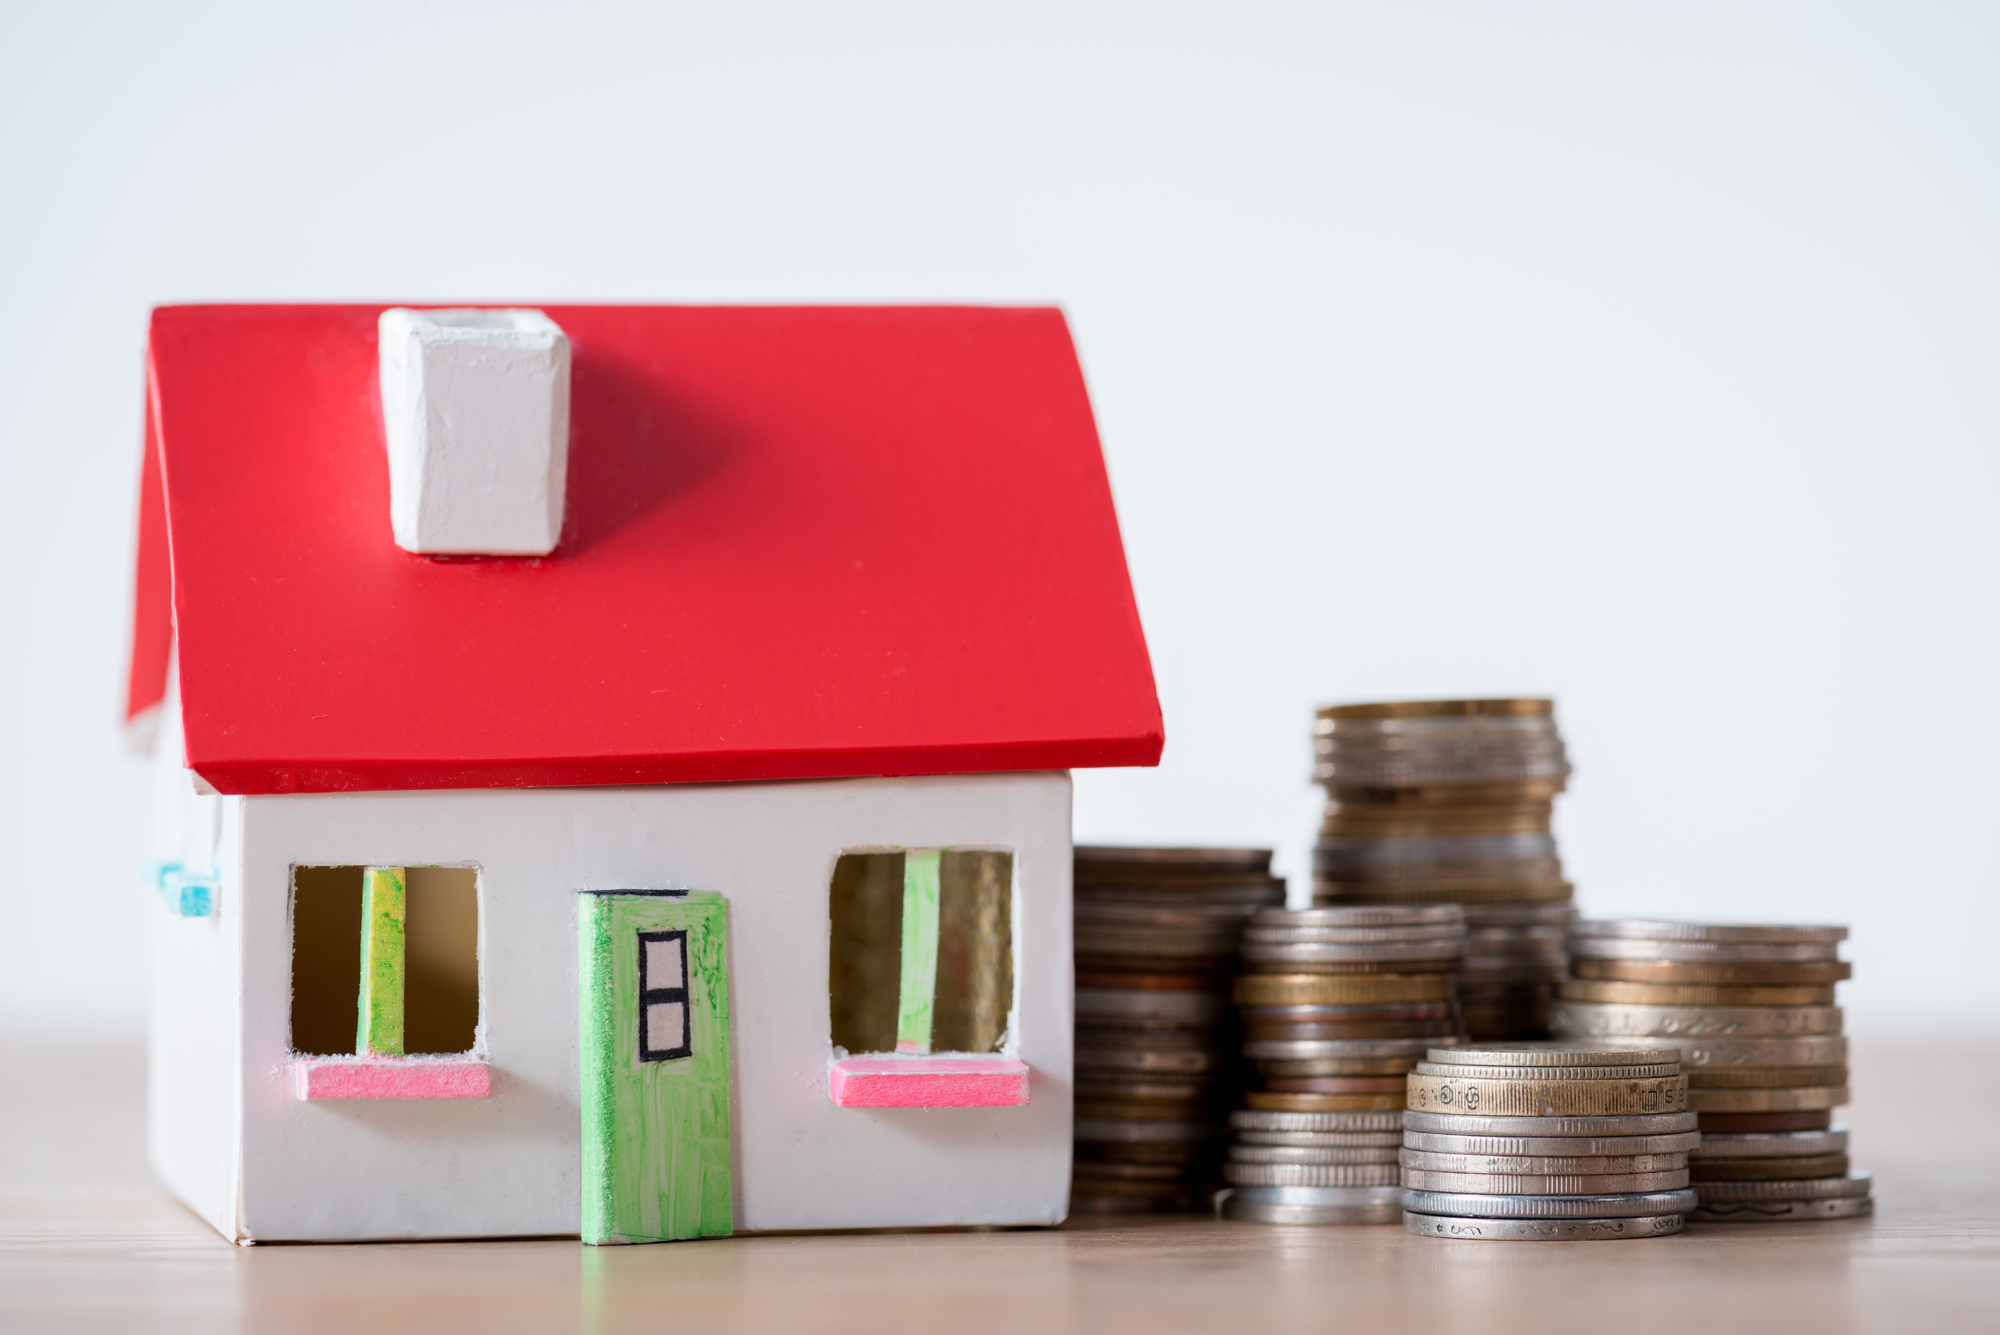 House model with red roof and white walls and stacks of metal coins isolated on grey